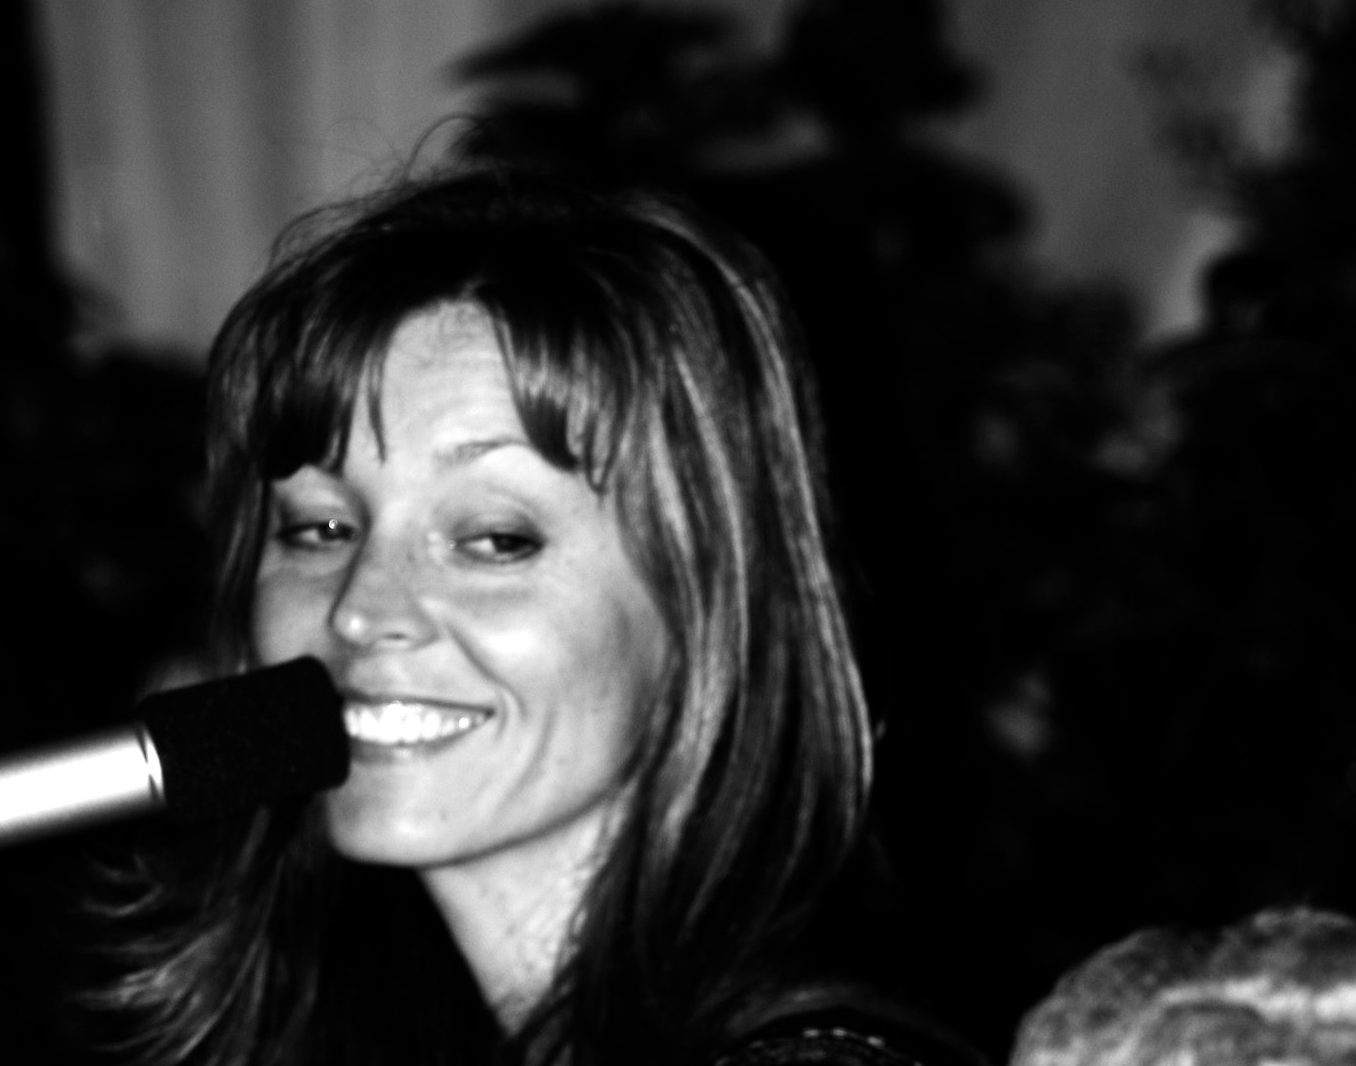 A black and white photo of a woman smiling into a microphone.